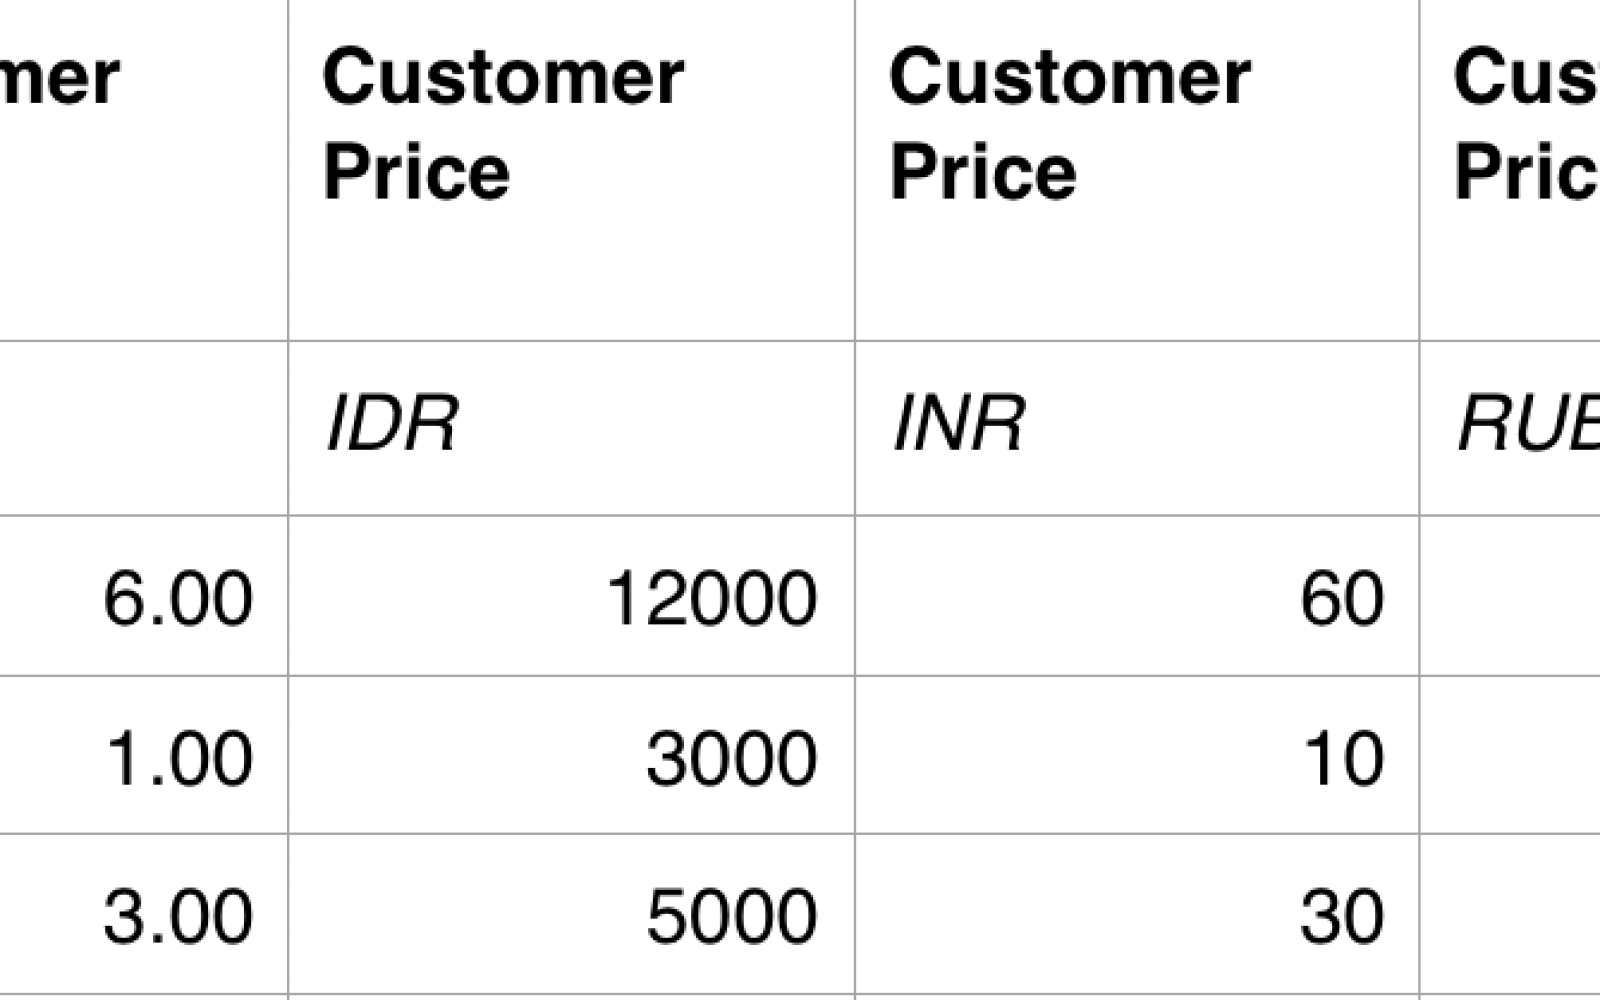 New App Store Price Tiers Let Developers Set Very Low Prices For